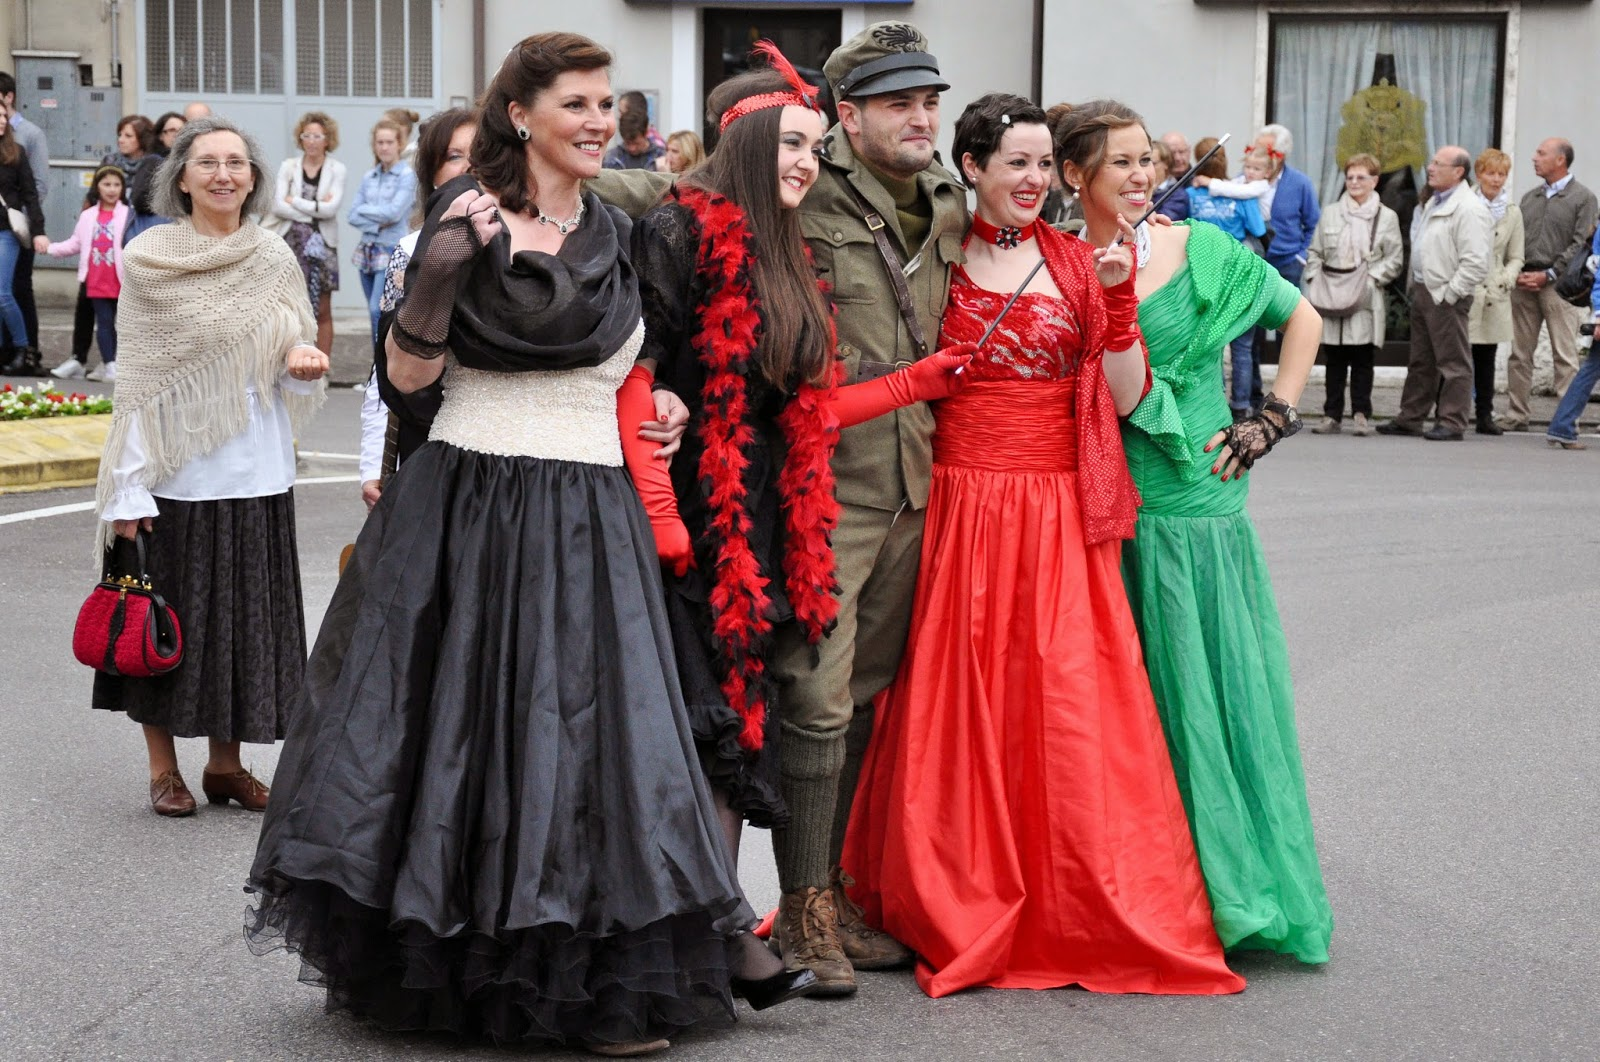 A soldier and women of ill repute at the Parade, Donkey Race, Romano d'Ezzelino, Veneto, Italy